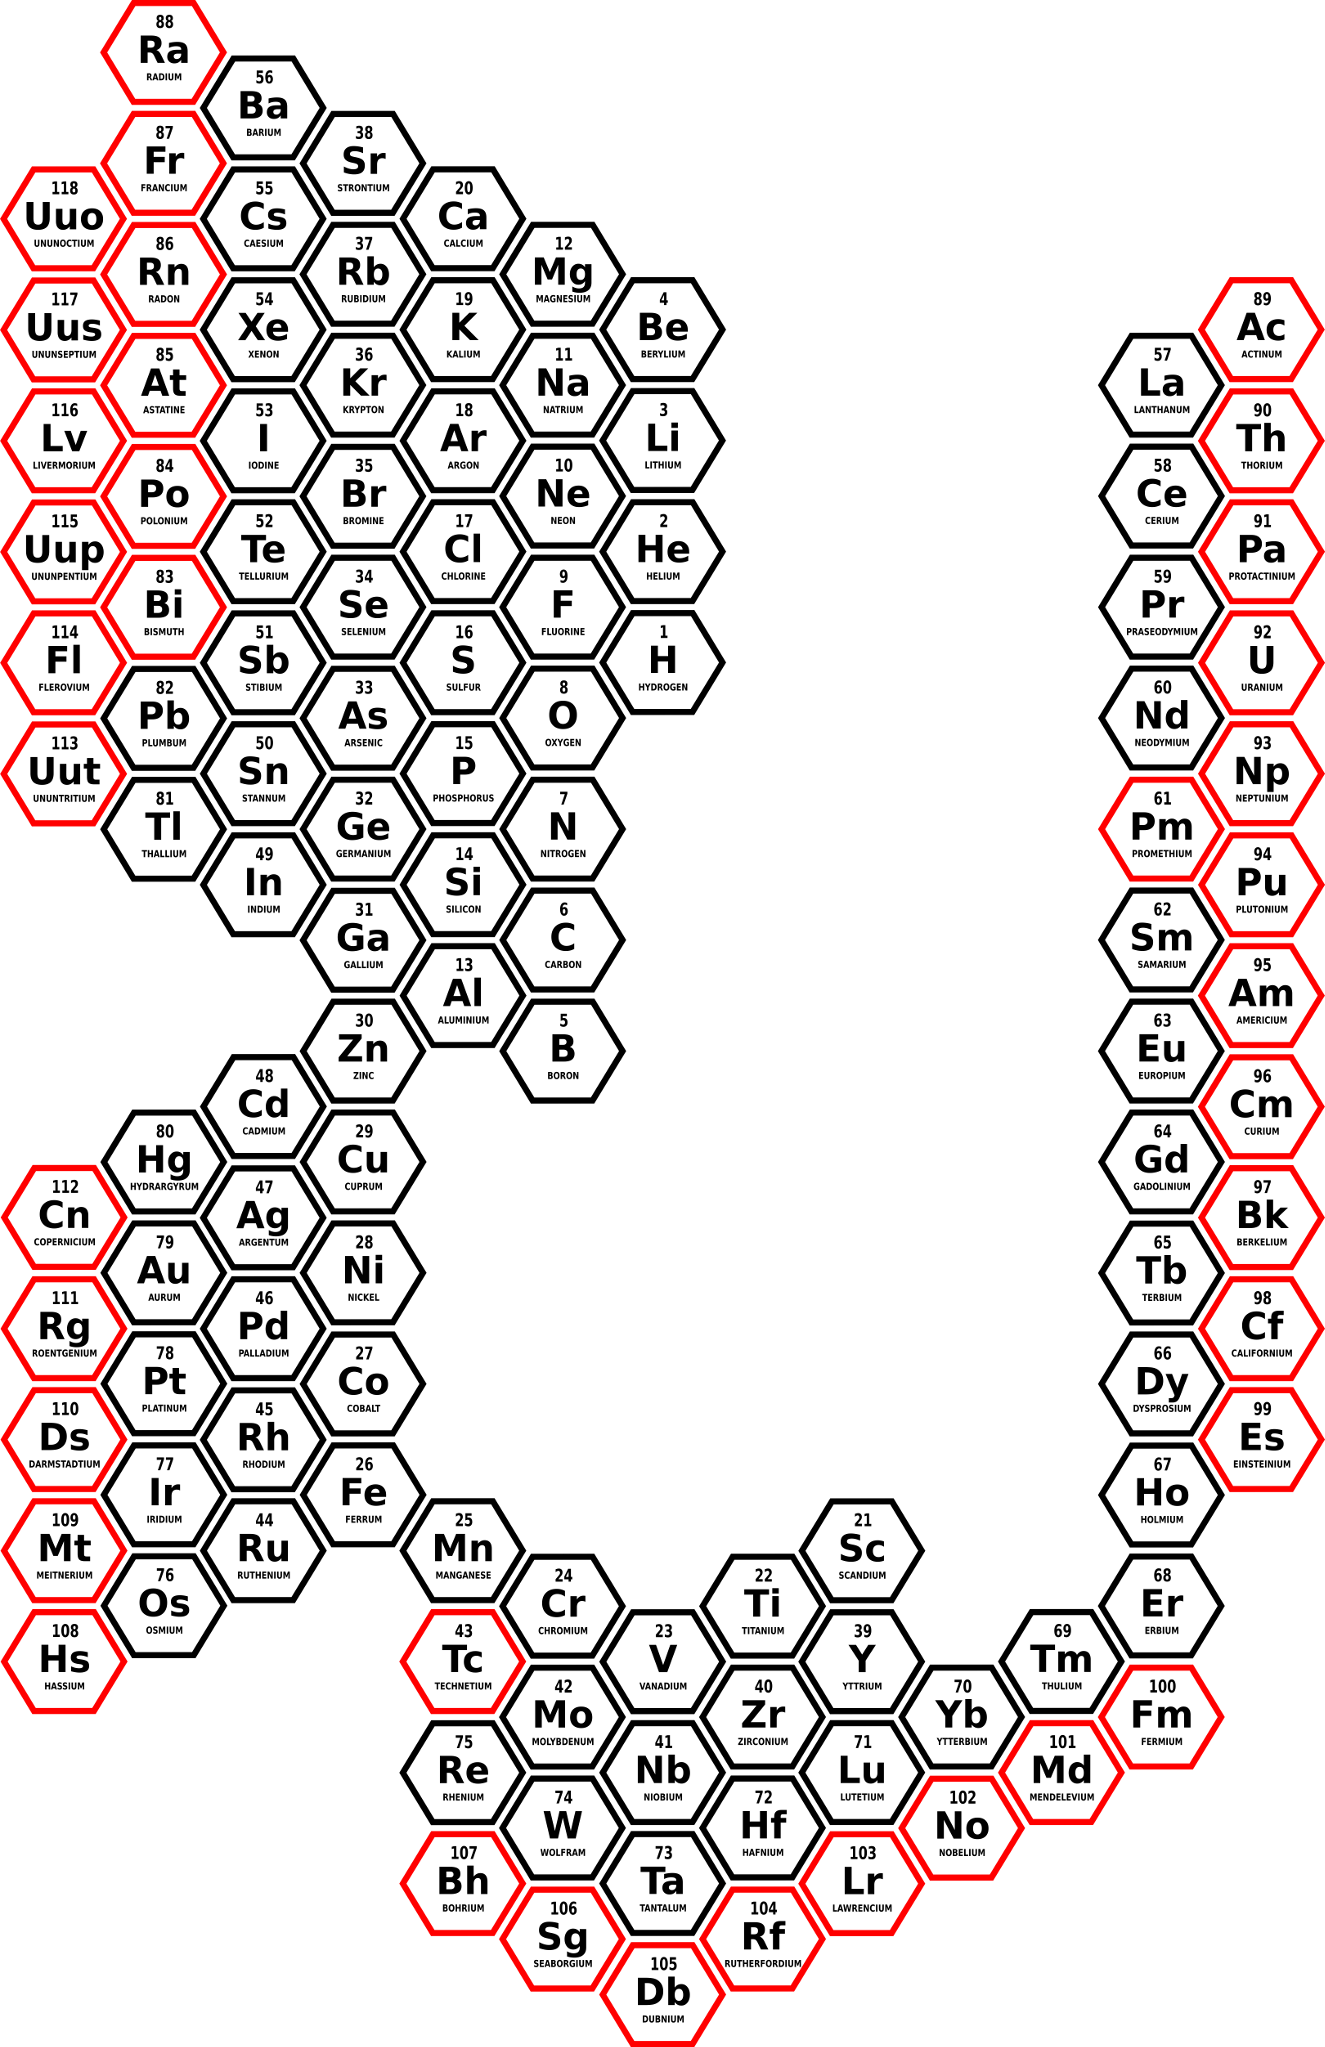 Figure 6b Representation Of All Radioactive Elements Red In The